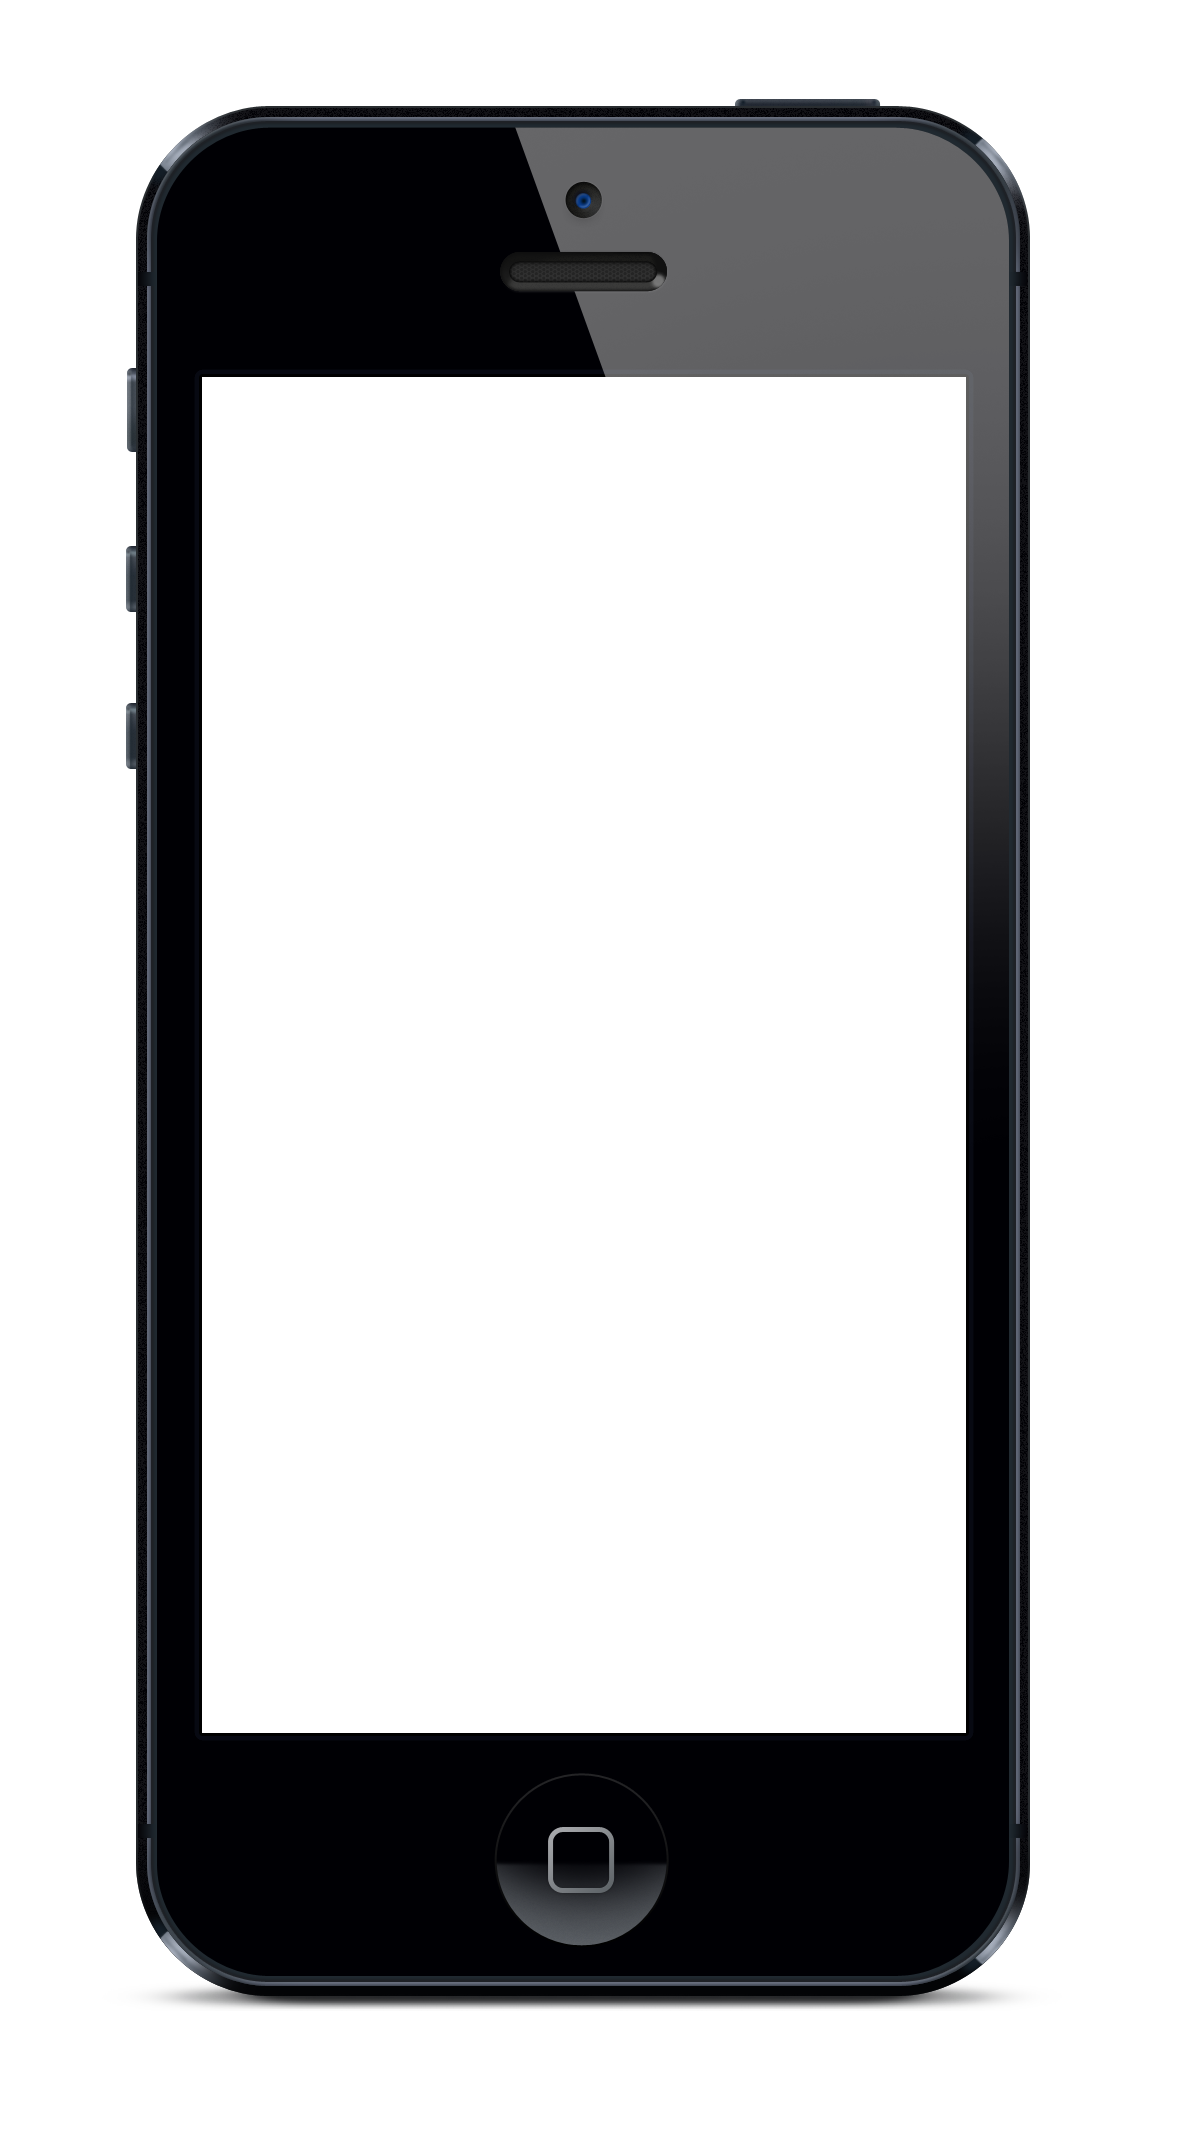 HQ Iphone PNG Transparent Iphone.PNG Images..